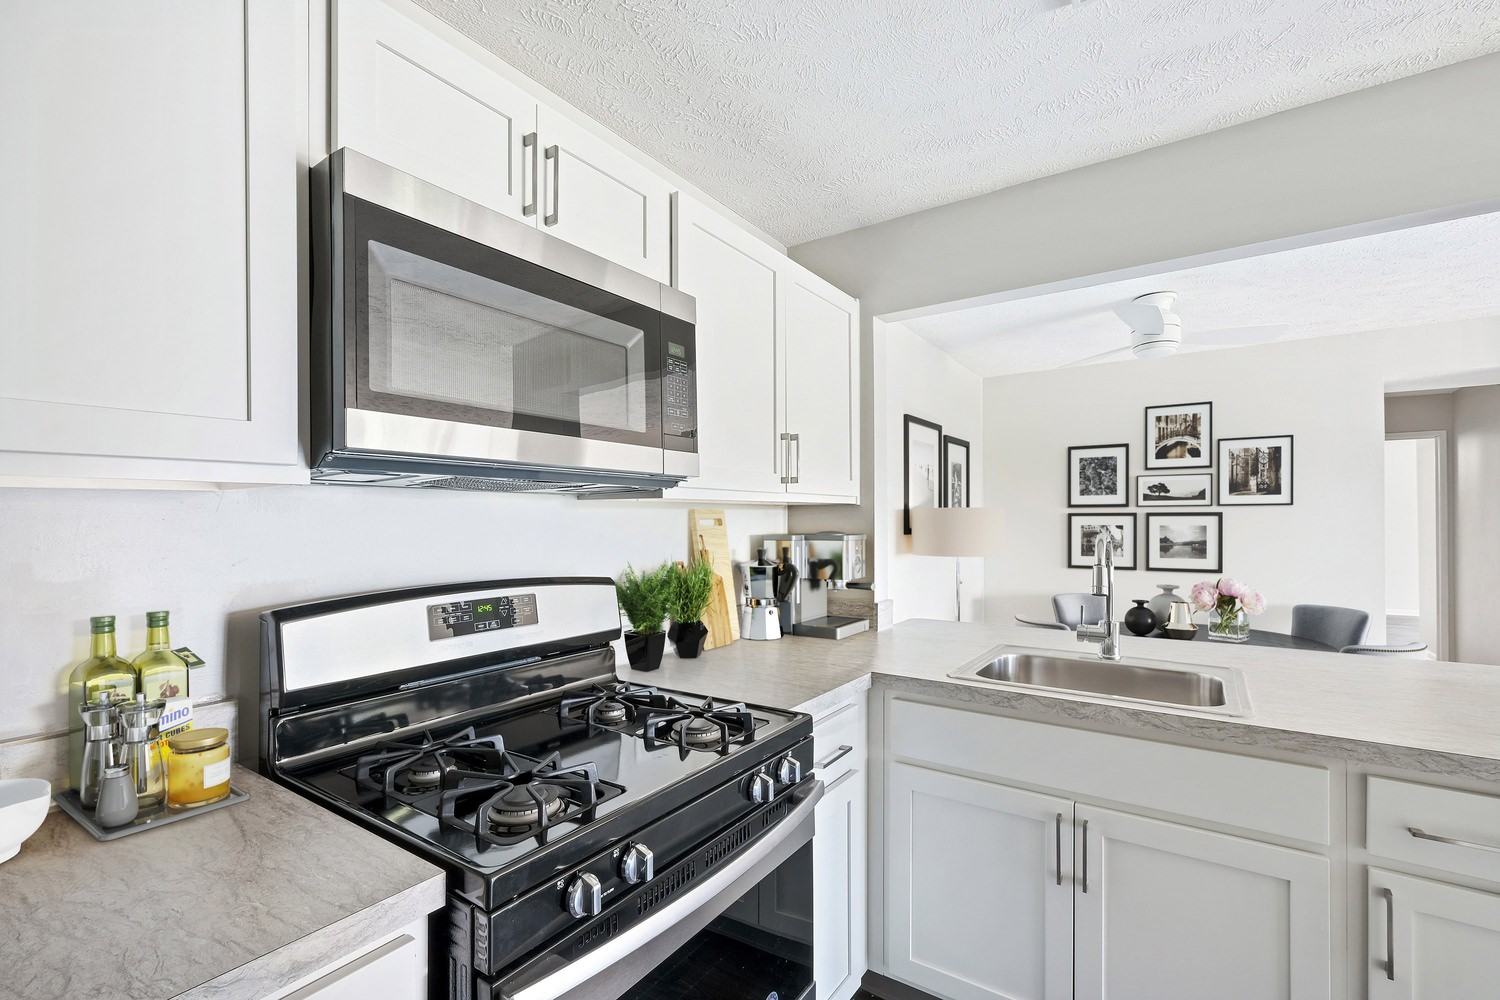 A kitchen that has a gas range in the middle of it, a microwave above it, and white cabinets with pulls on them.